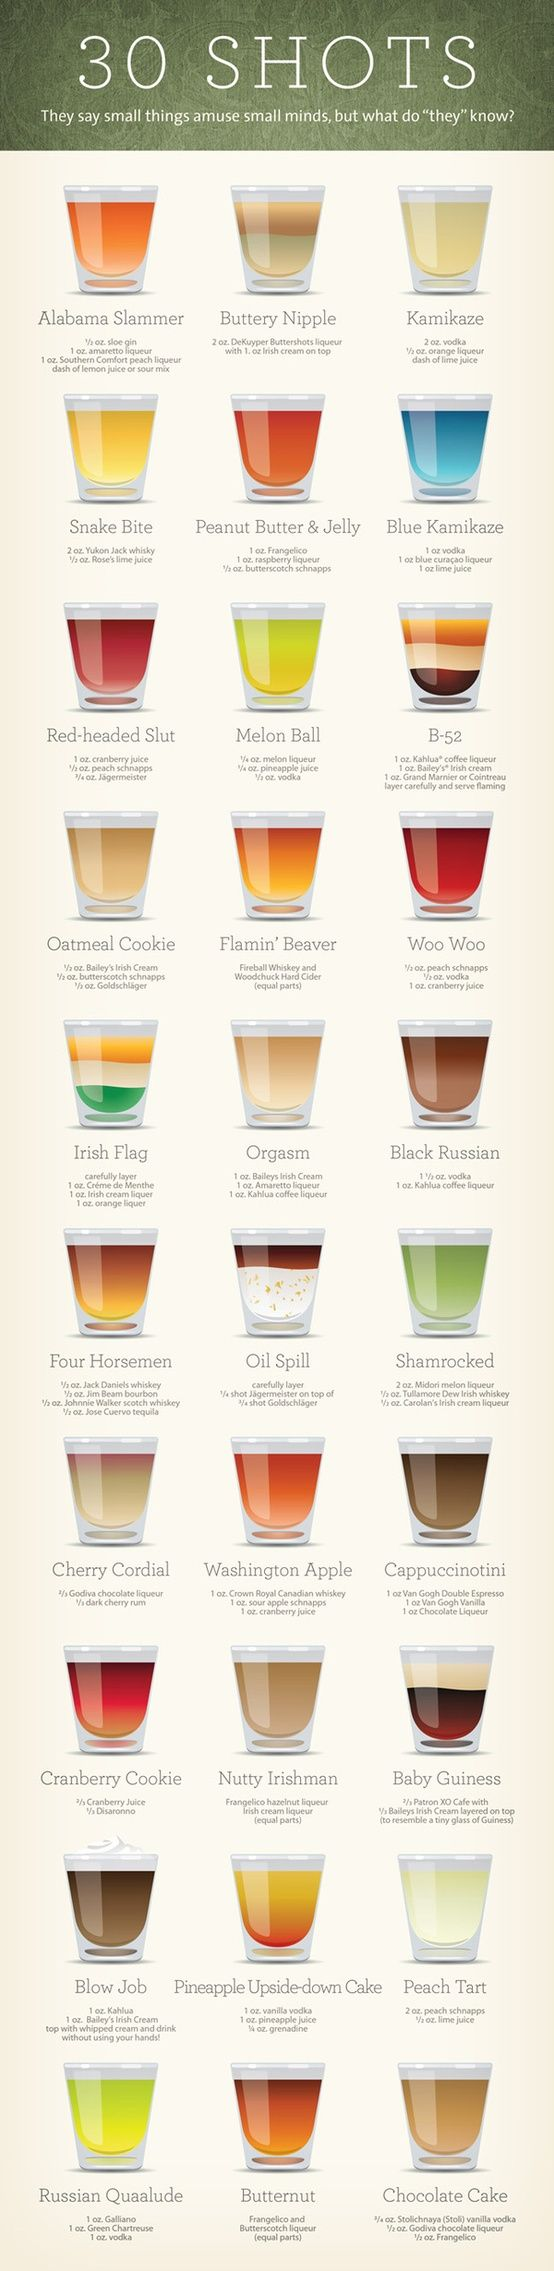 Shots Infographic by Donald Bullach, via Behance 30 Shots Infographic by Donald Bullach, via Behance30 Shots Infographic by Donald Bullach, via Behance